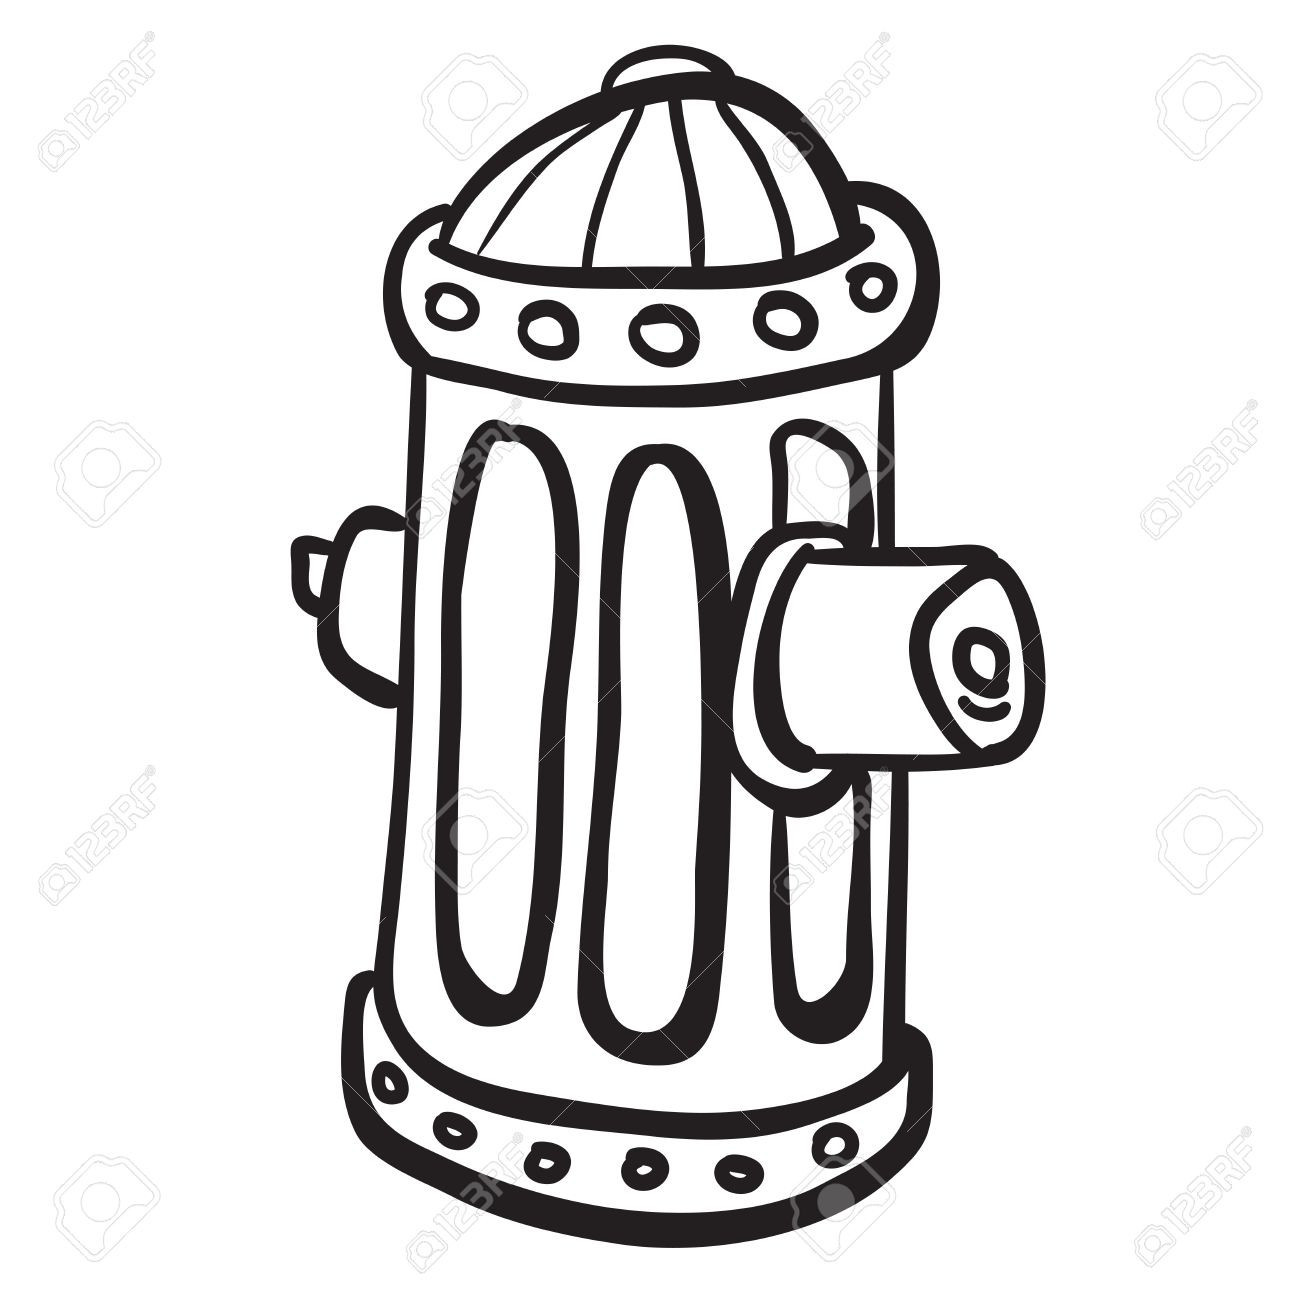 1300x1300 Simple Black And White Fire Hydrant Cartoon Royalty Free Cliparts